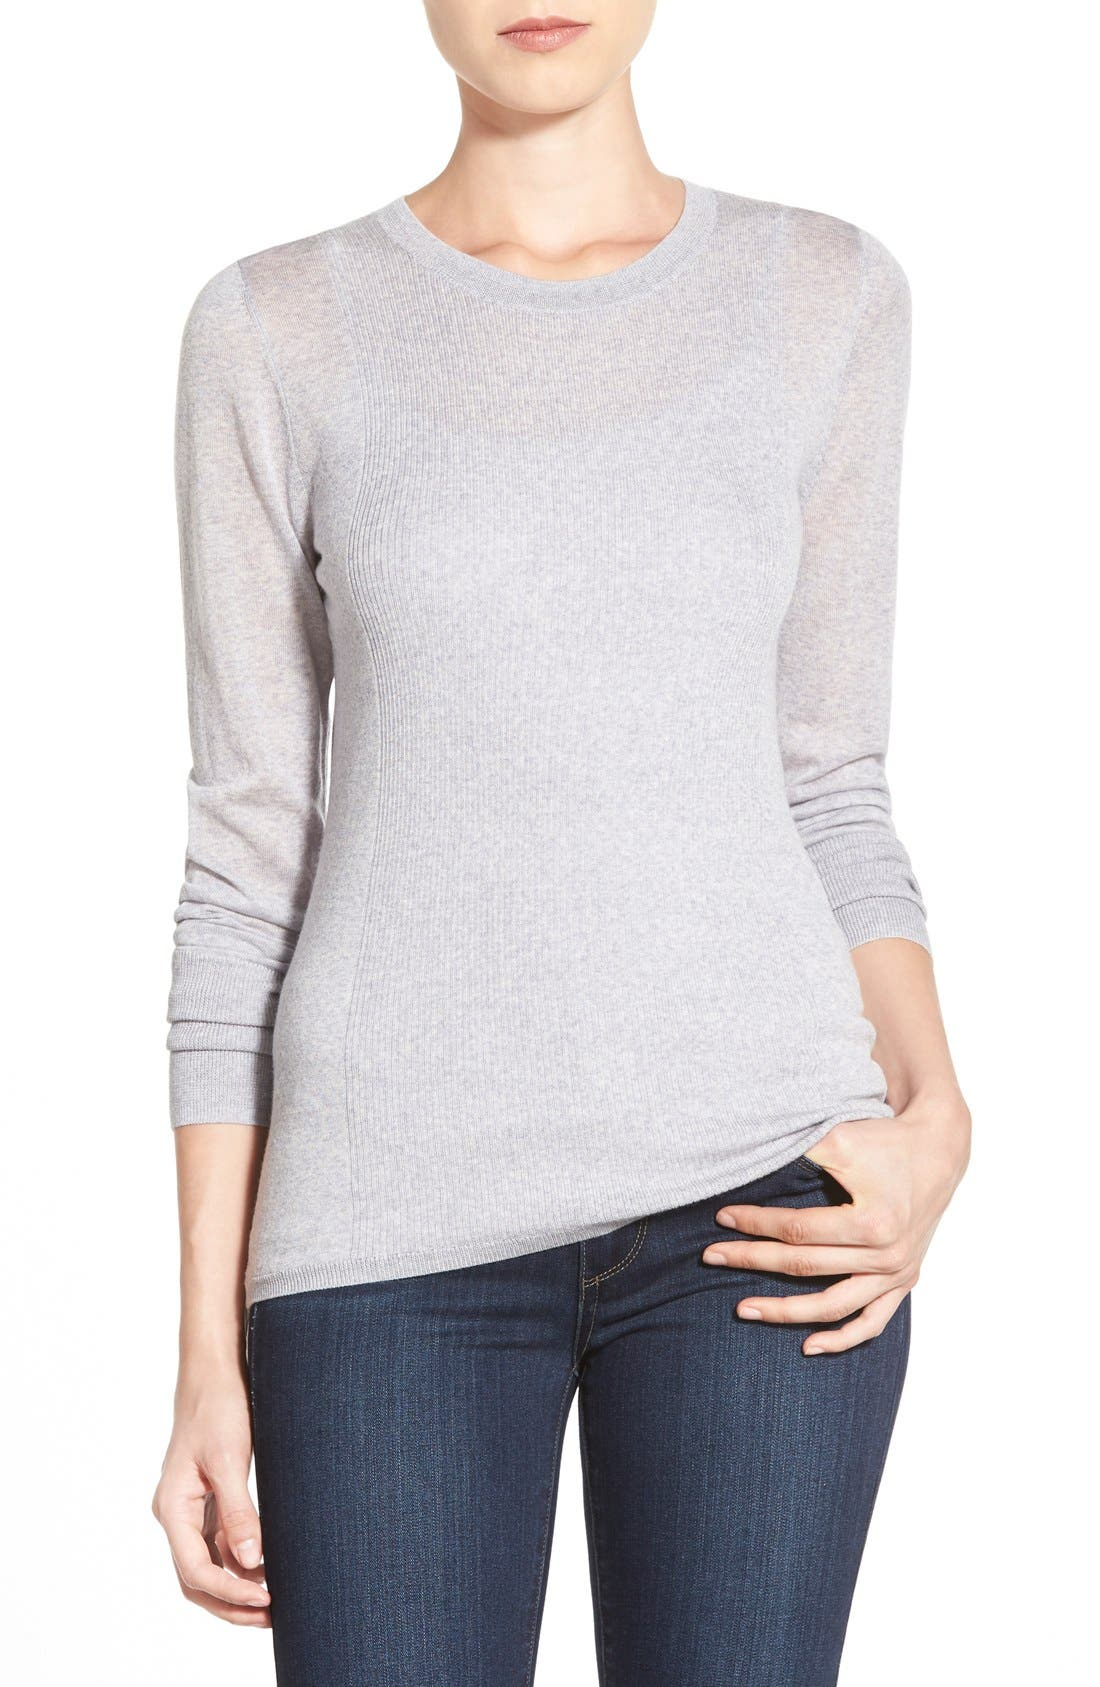 Main Image - Halogen® Rib Detail Lightweight Merino Wool Sweater (Regular & Petite)